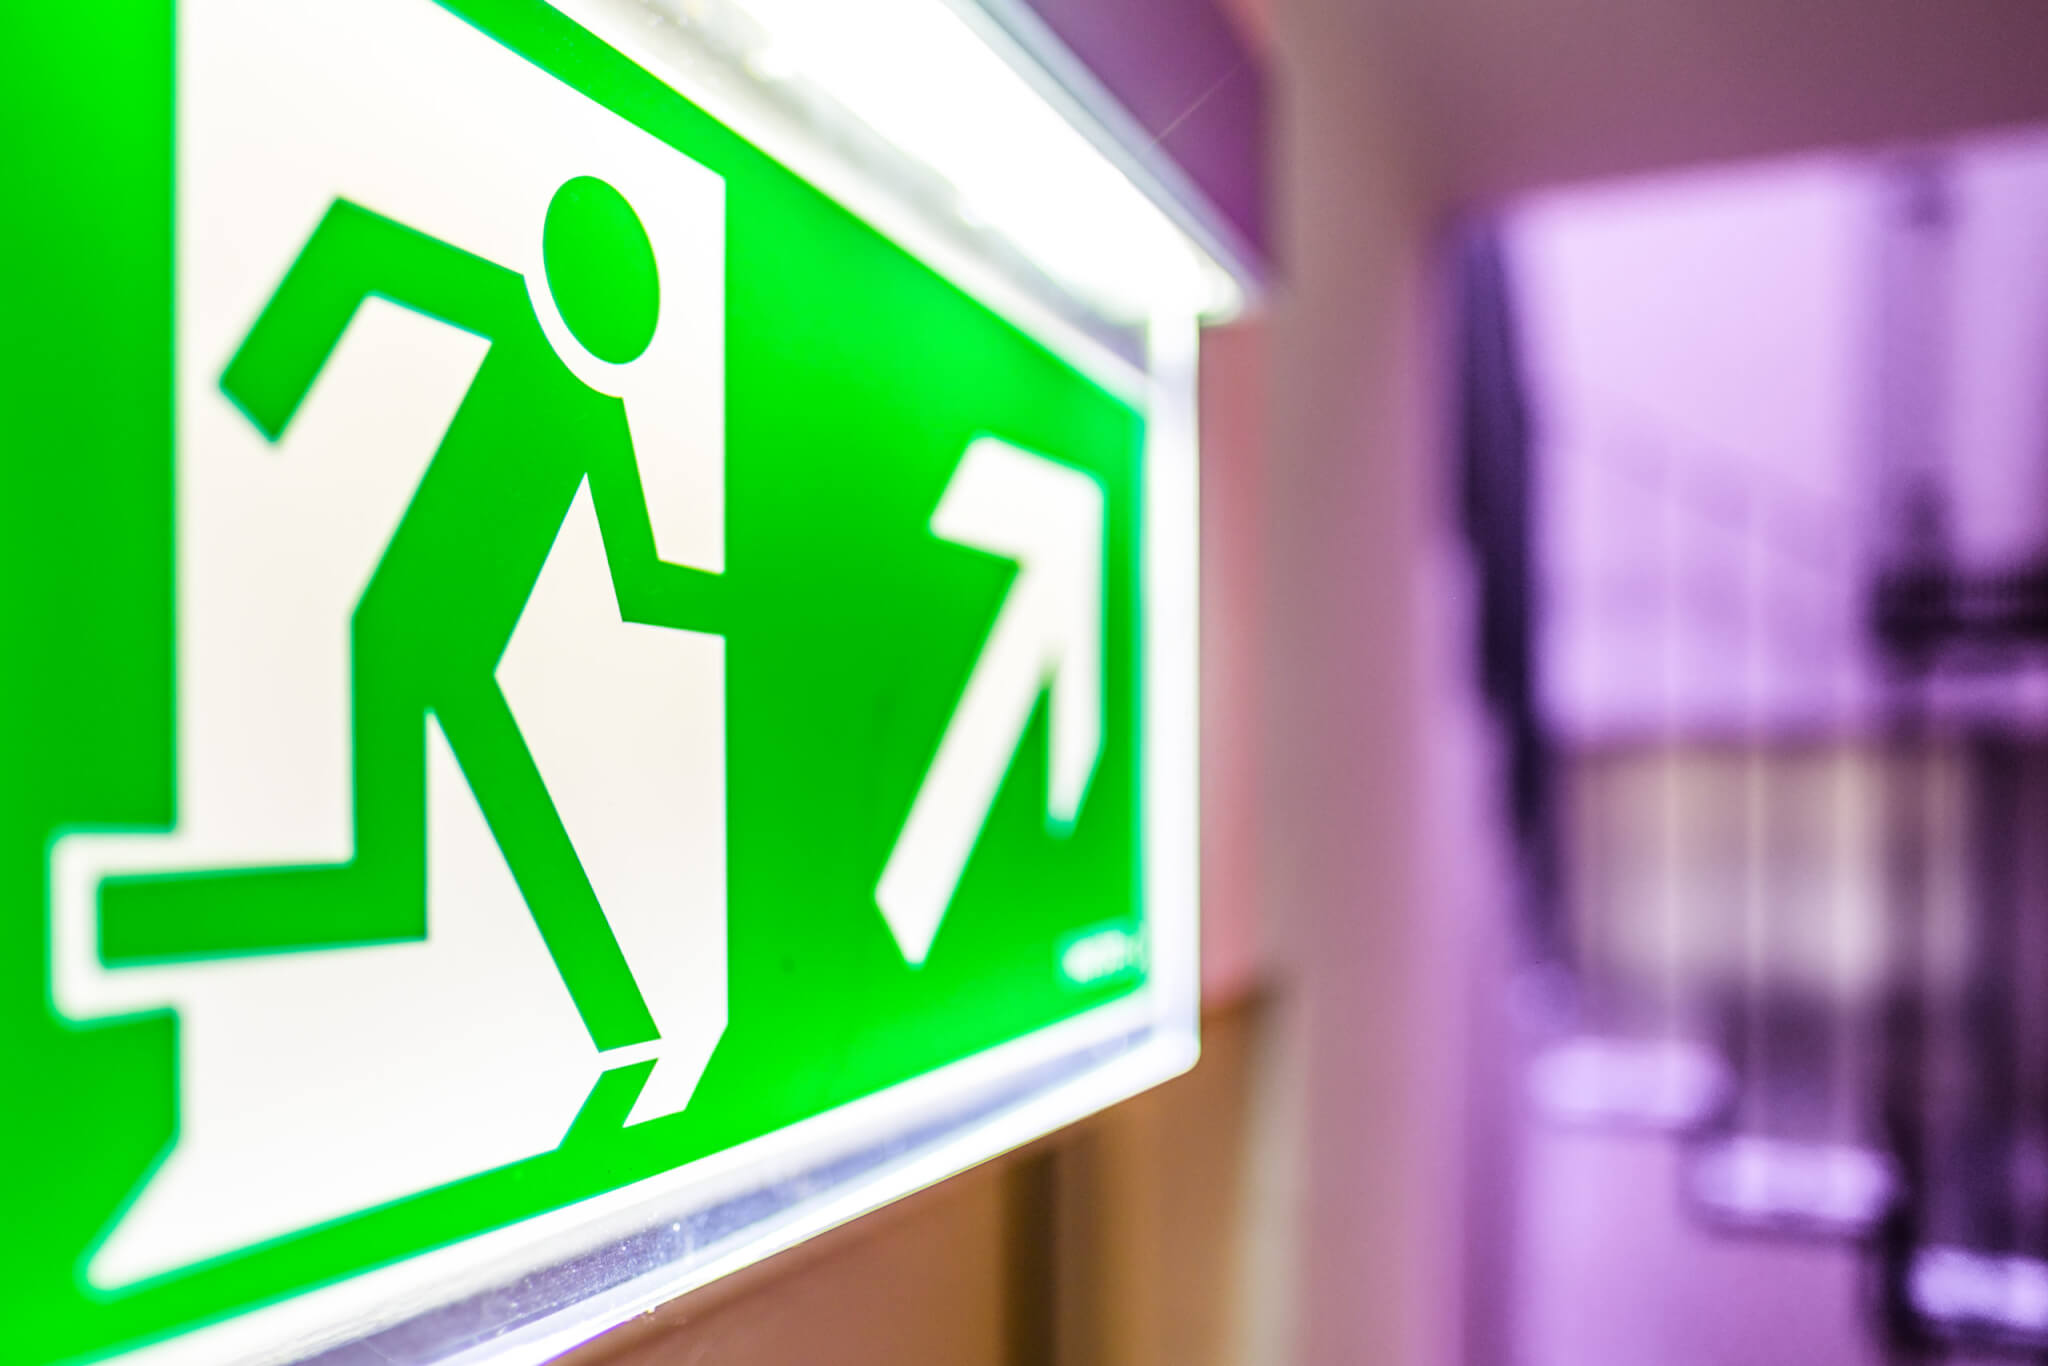 modern emergency exit sign - photo